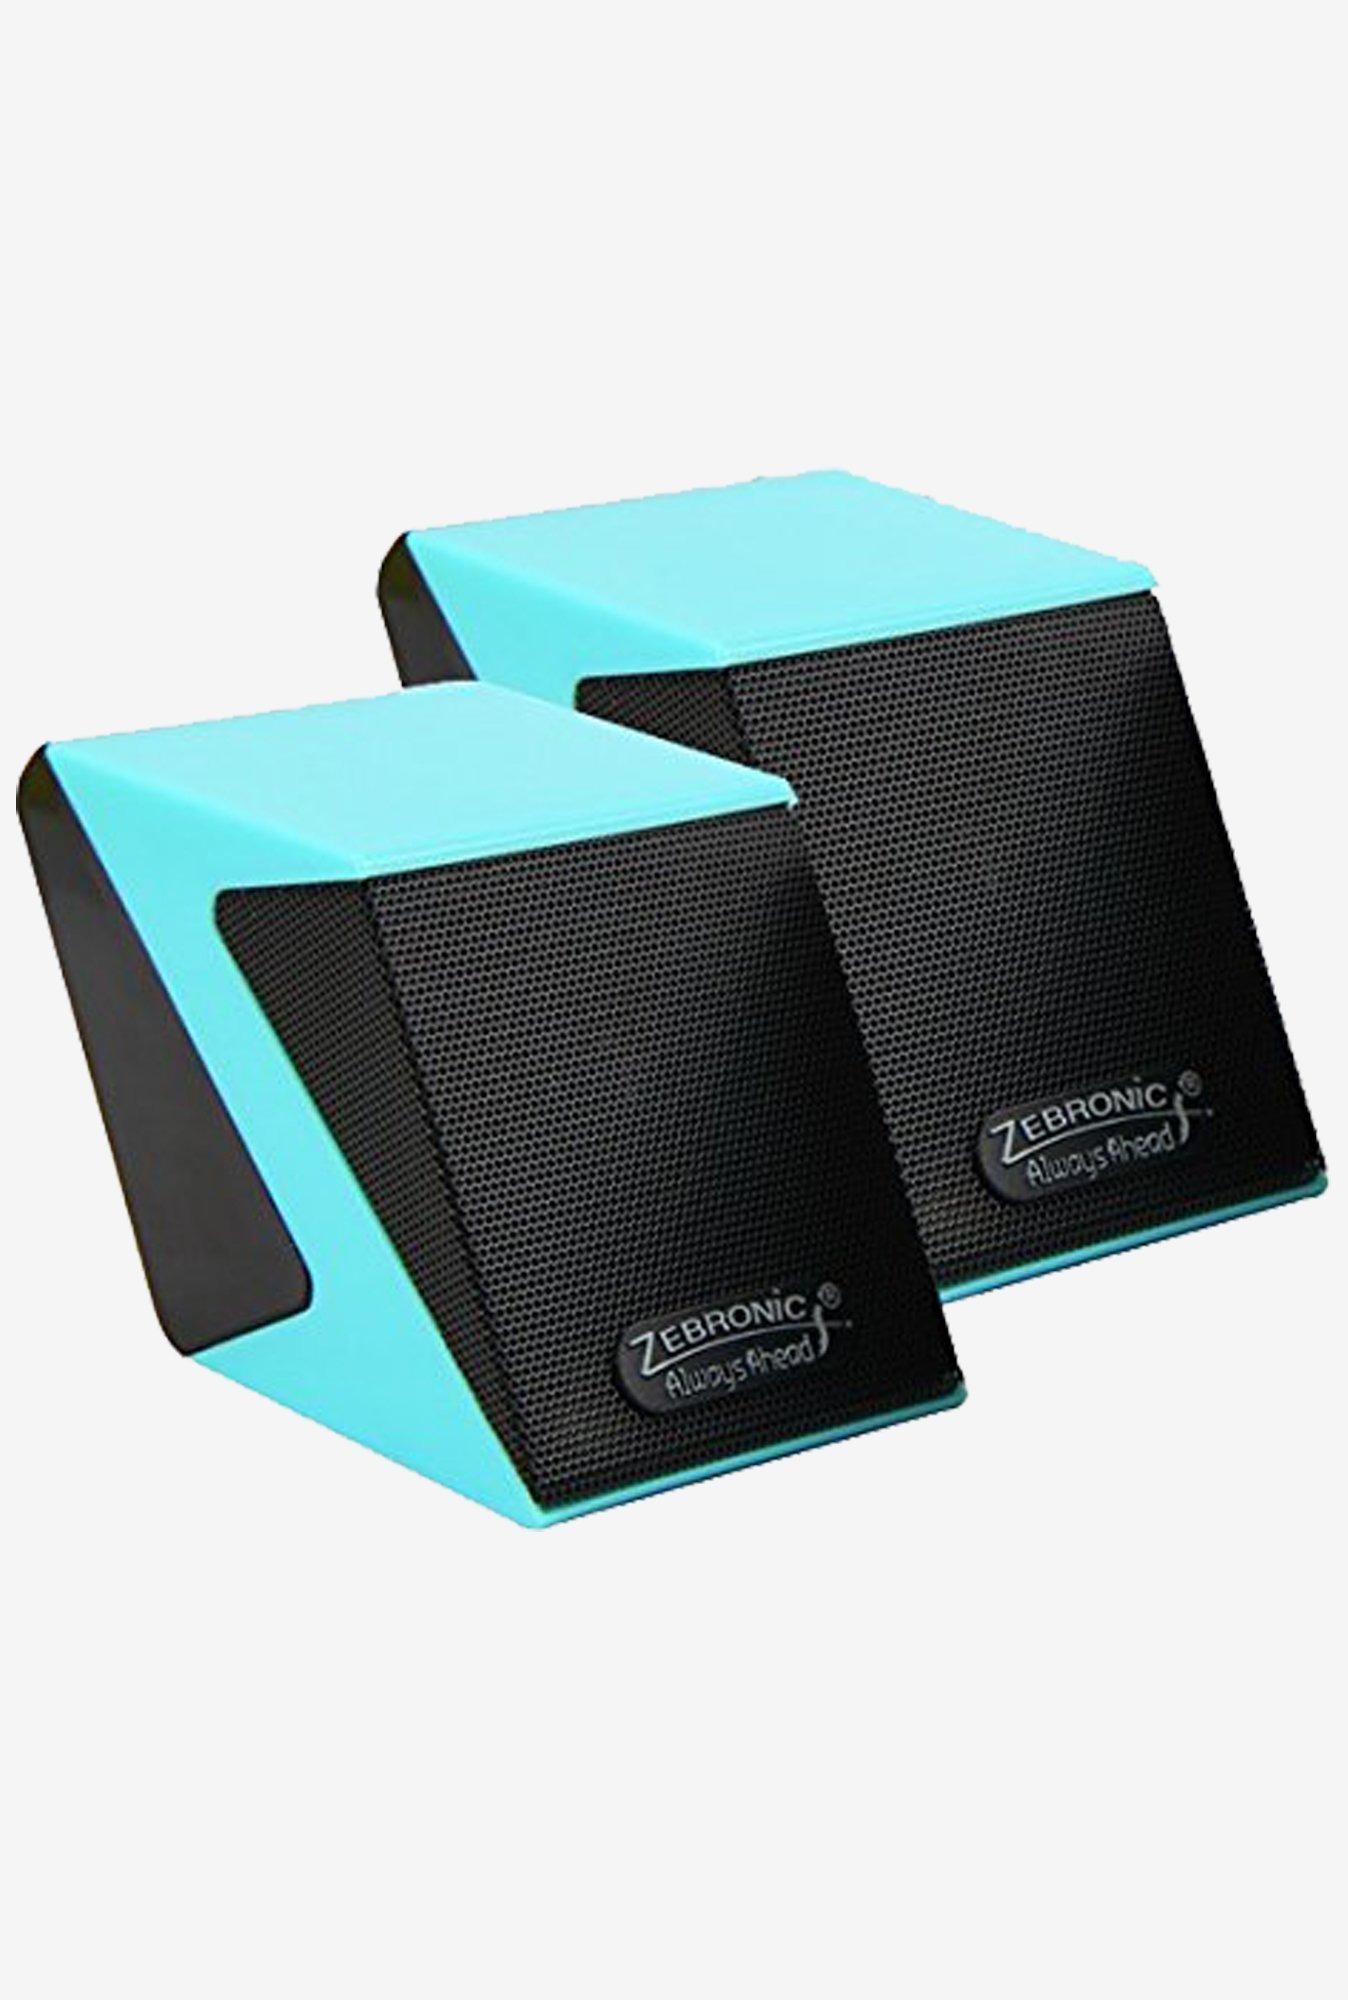 Zebronics Cubic 2.0 Channel Multimedia Speakers (Blue)